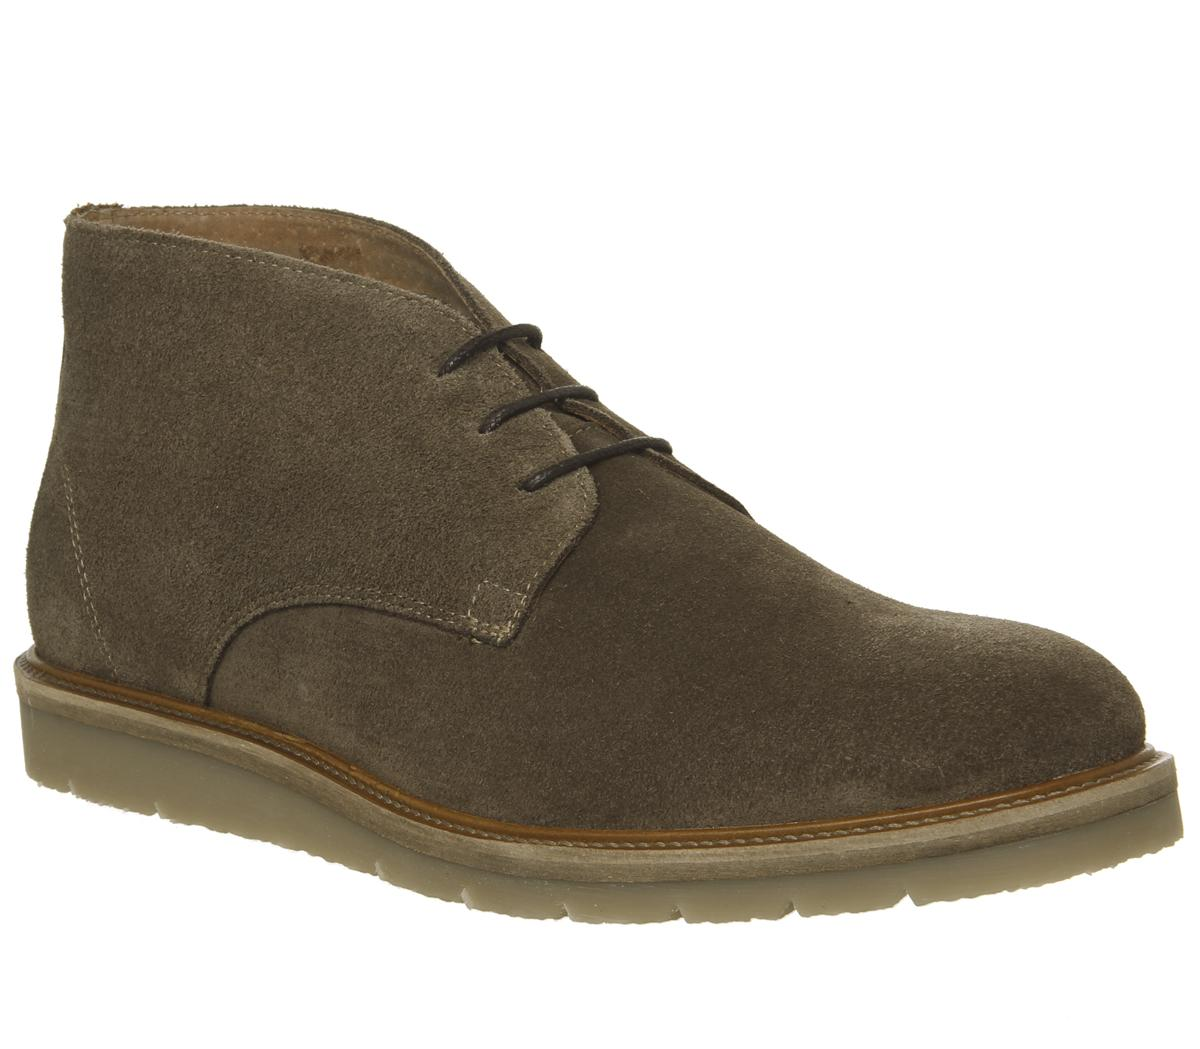 Inch Wedge Chukka